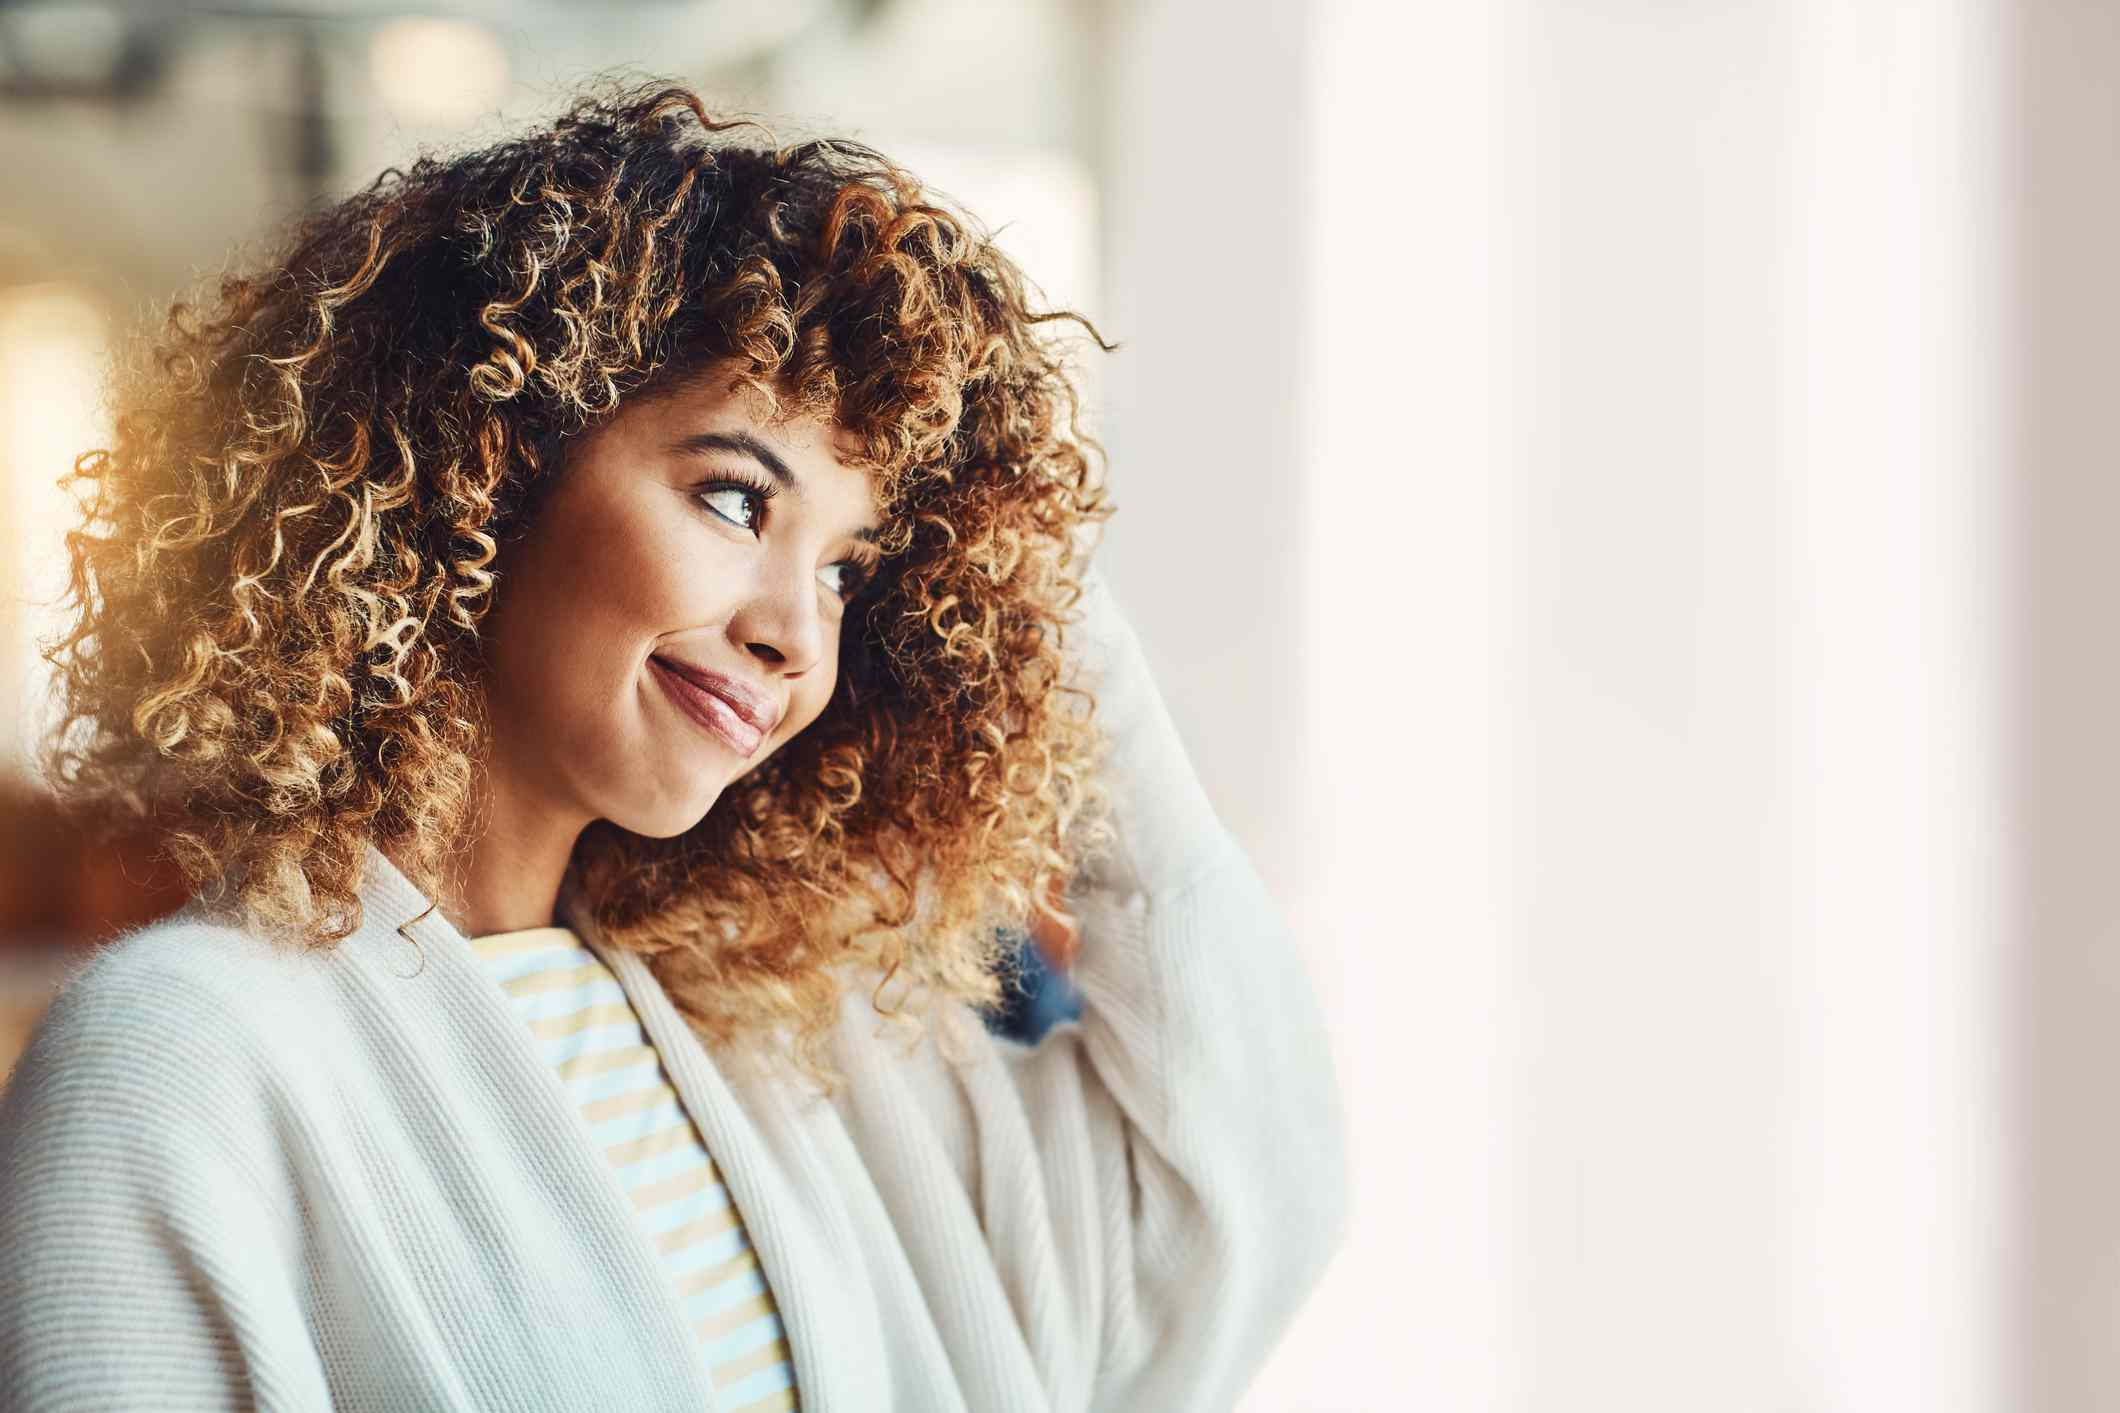 A black woman with curly hair smiles and touches her head.